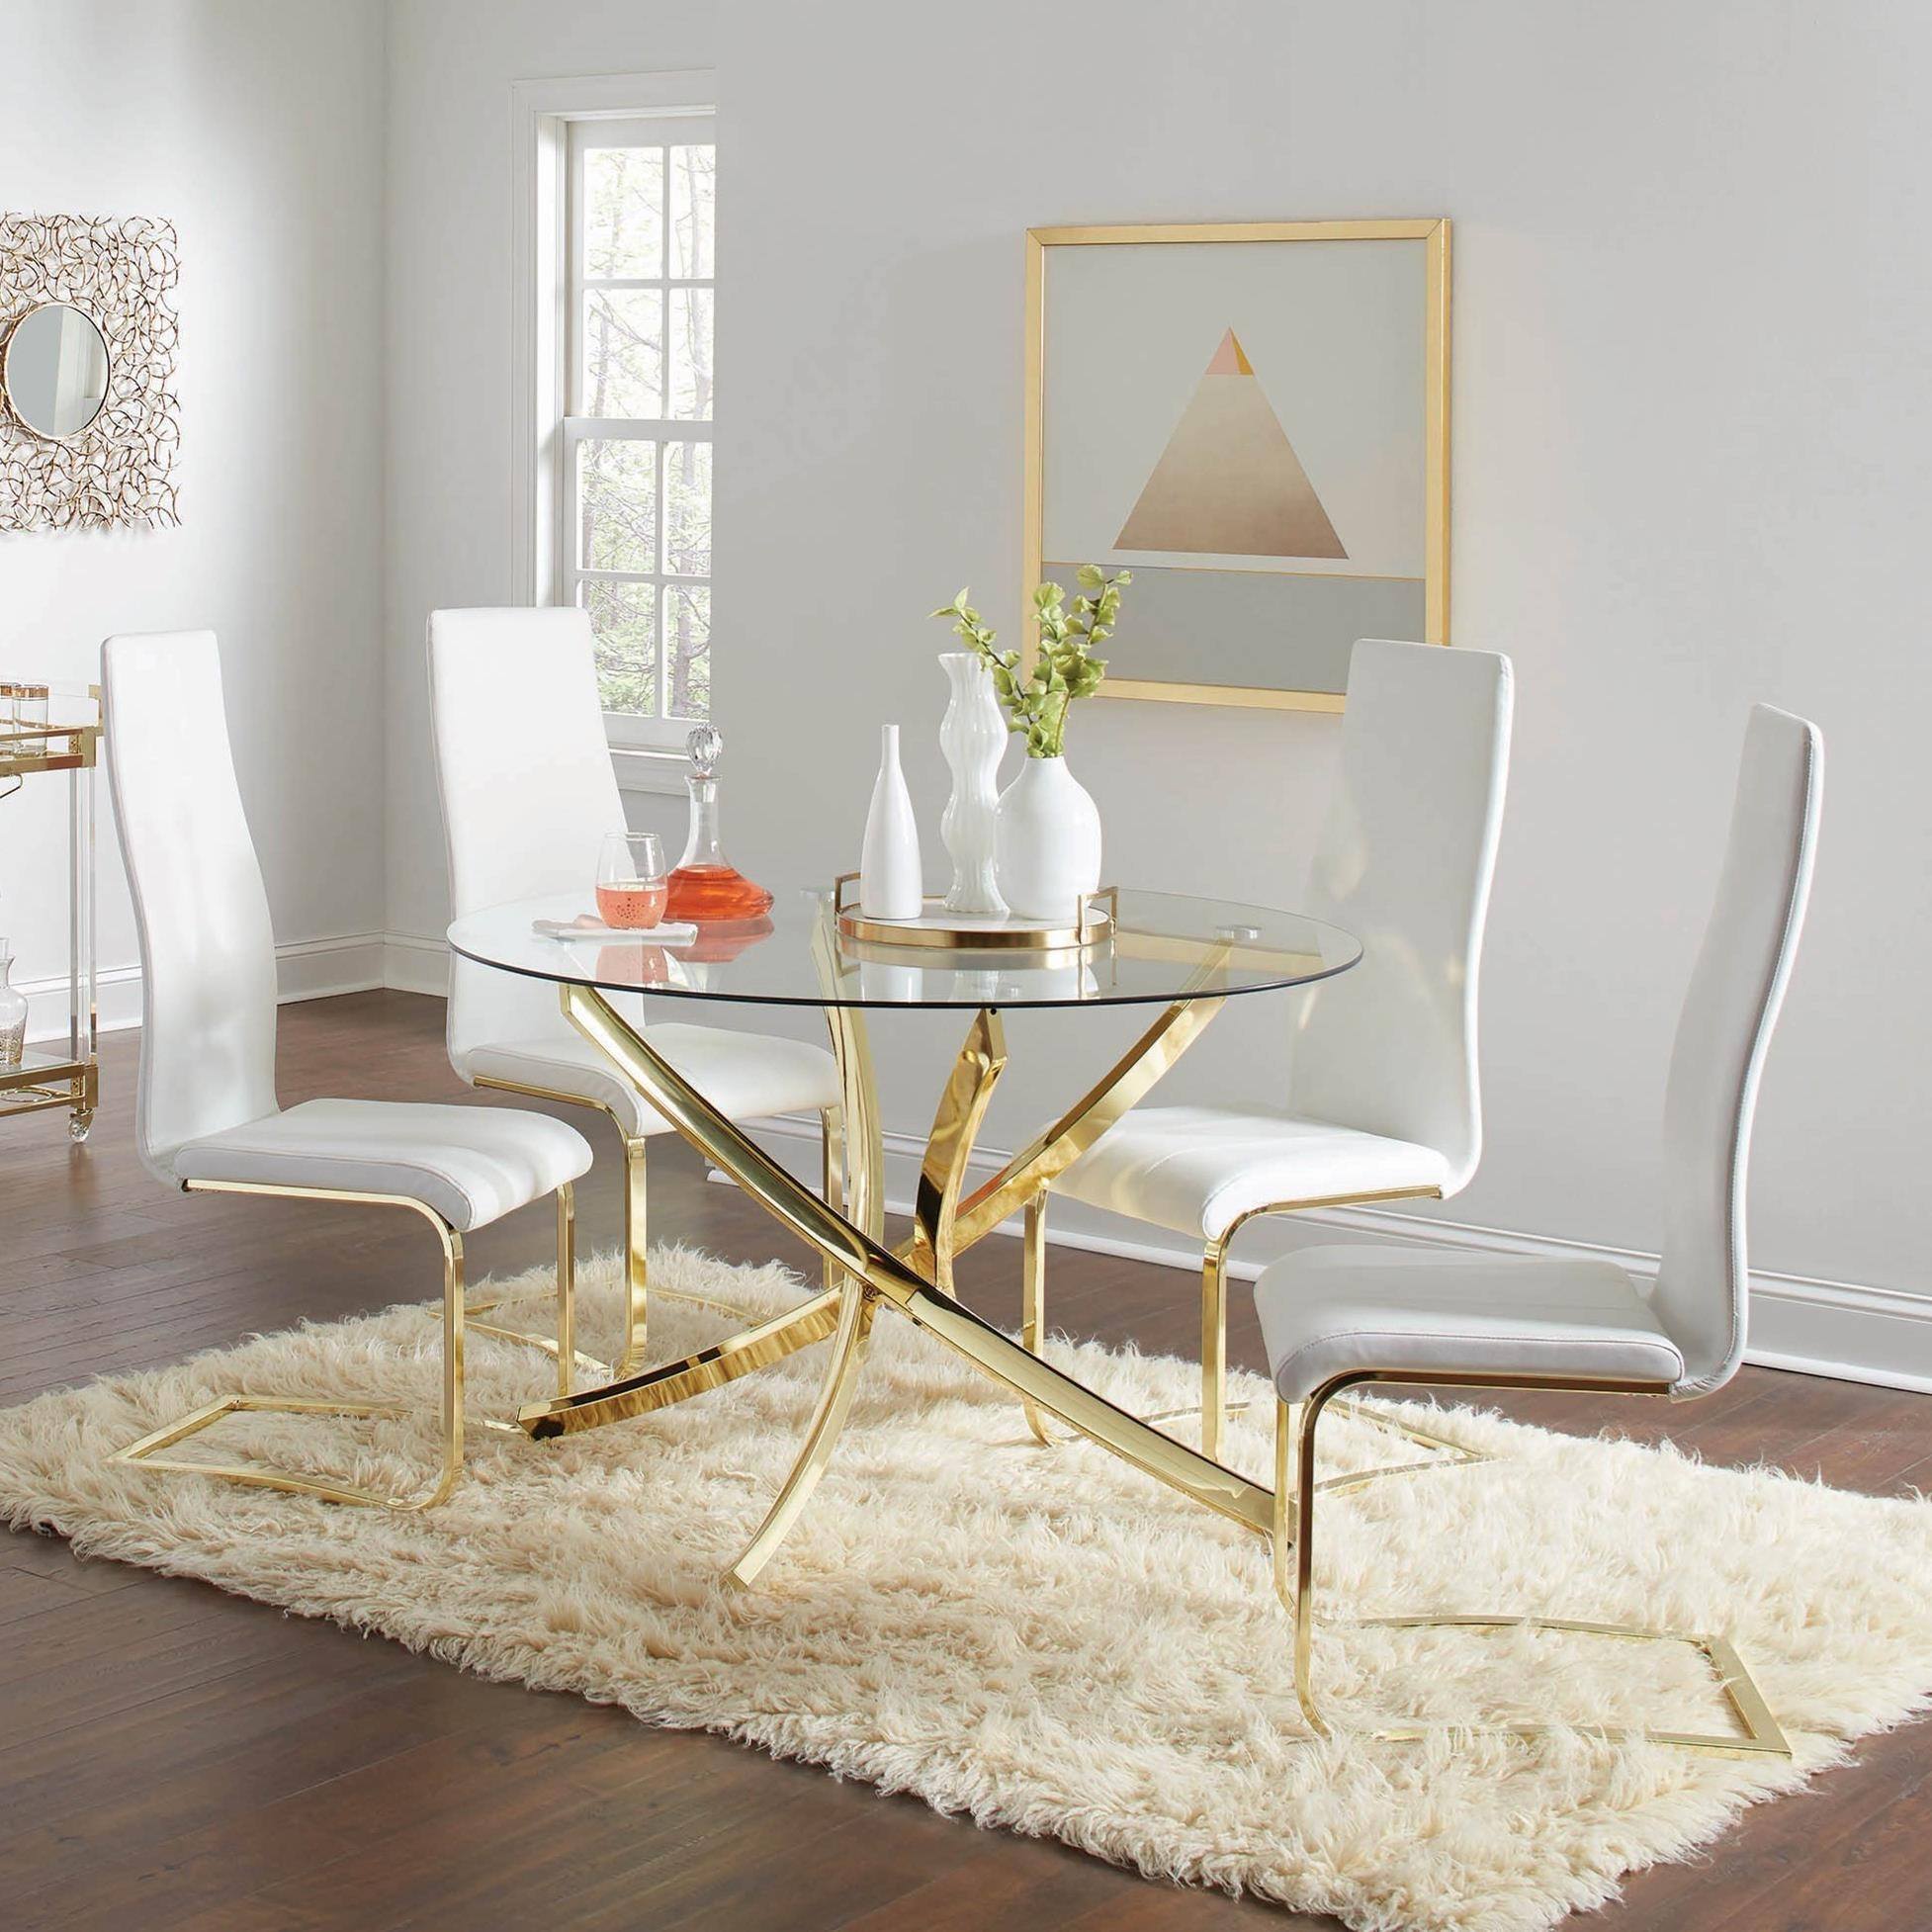 Coaster Carone Contemporary Glam Dining Room Set With: Coaster Chanel Glam 5-Piece Dining Set With Gold Colored